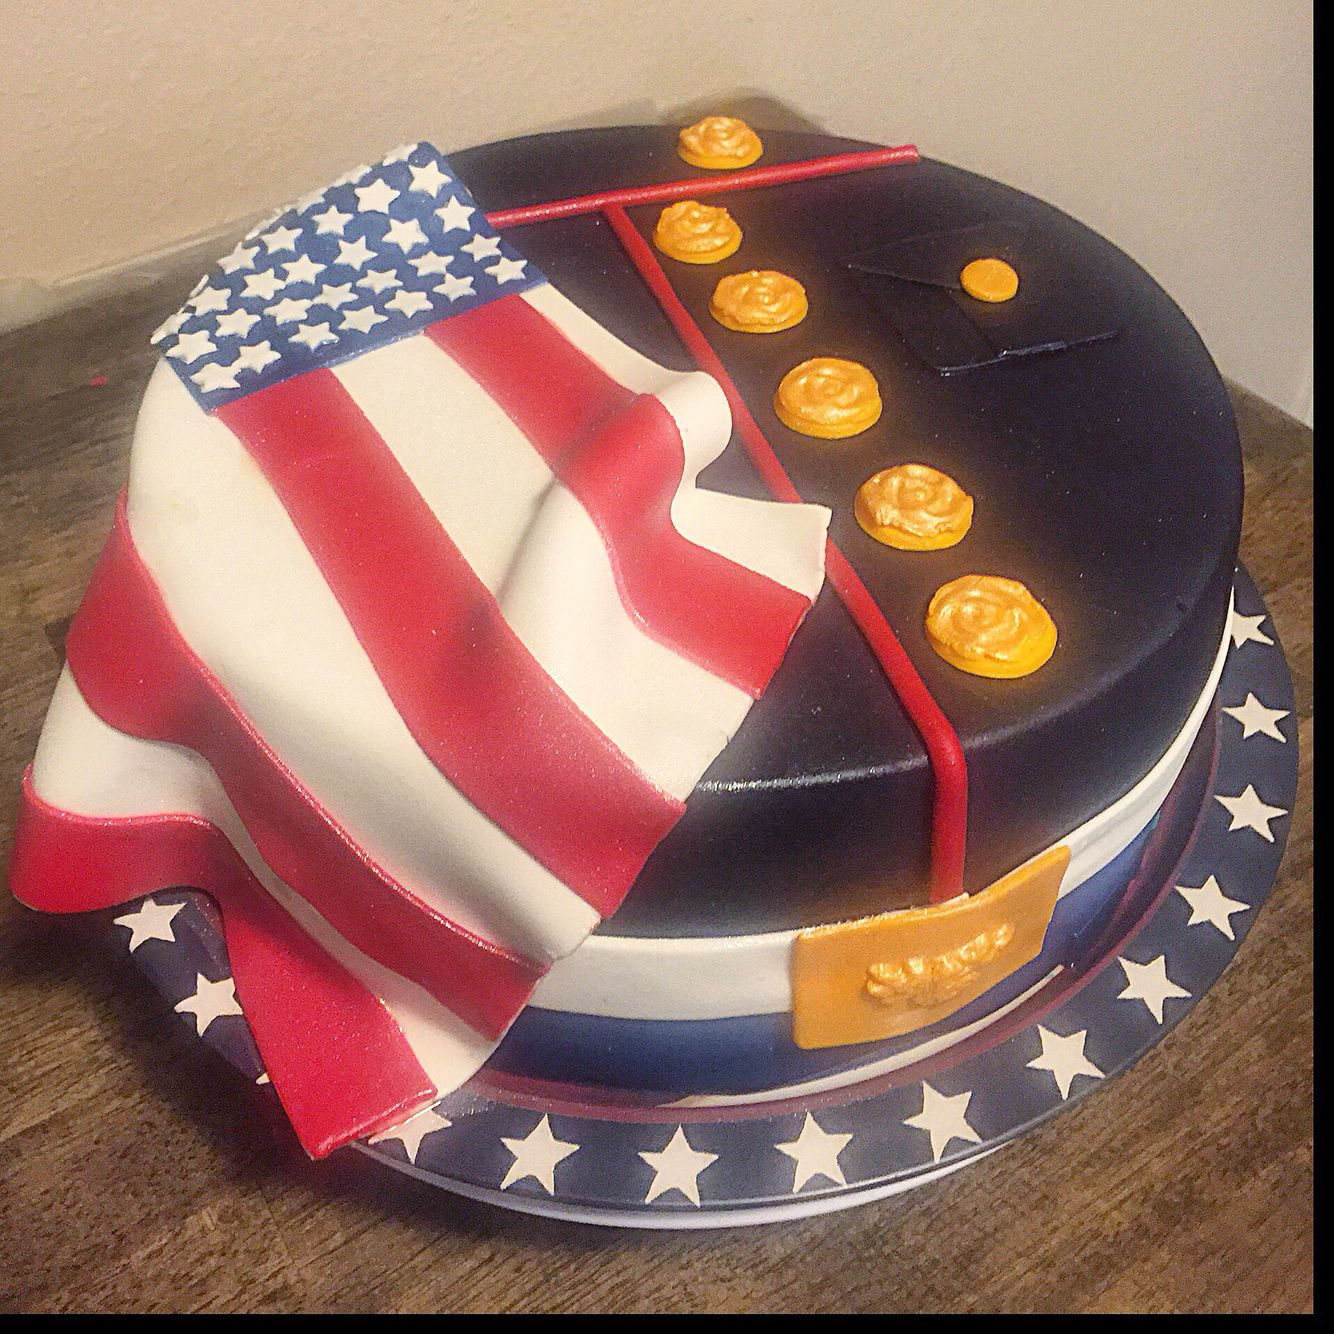 Marine Corps Dress Blues Cake Gave This To Bakery As Example Of What Make